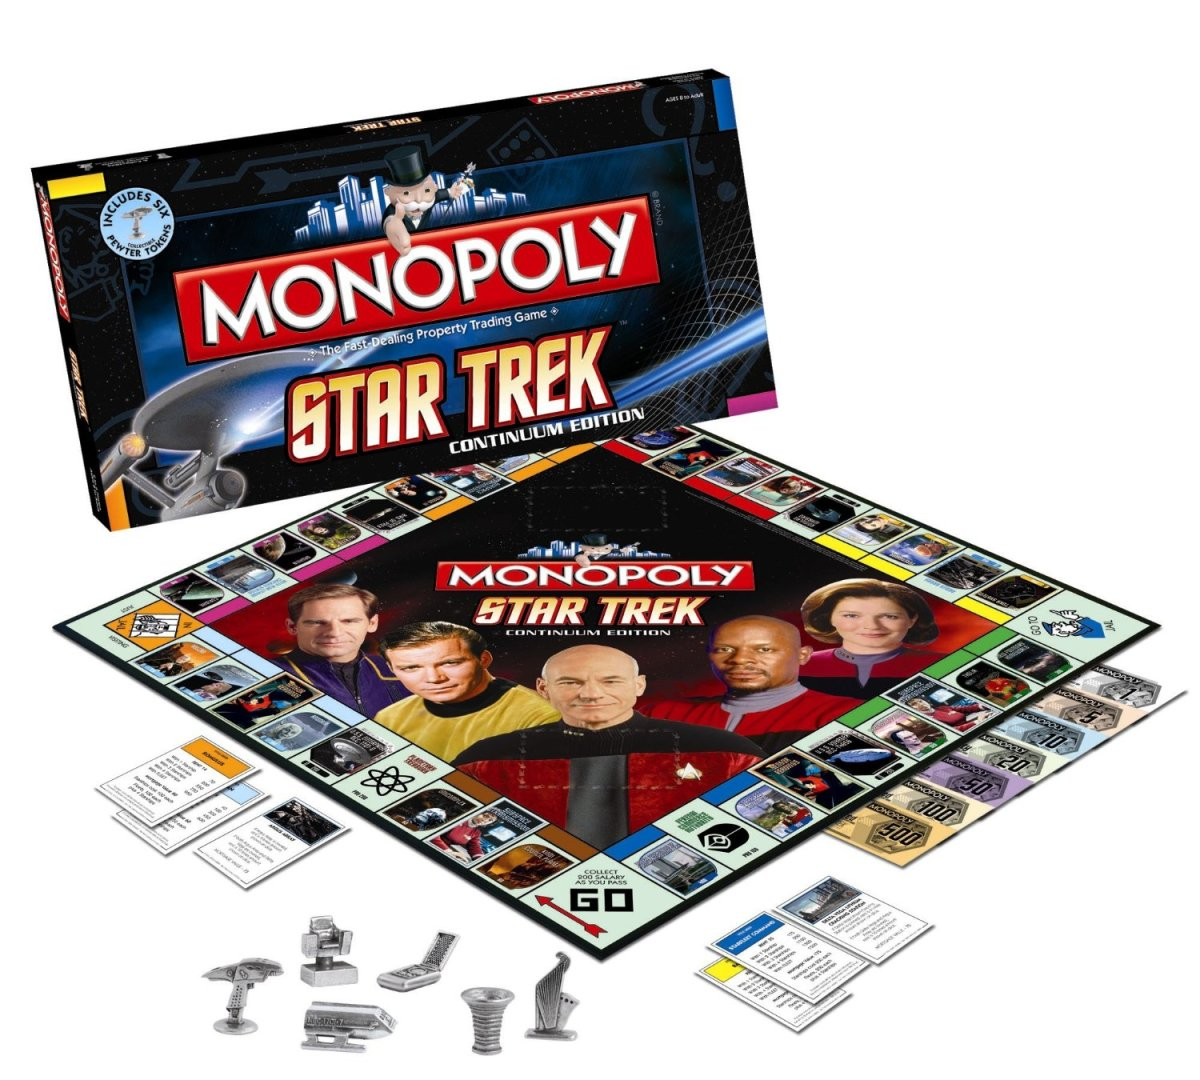 This game is perfect for Star Trek Fans